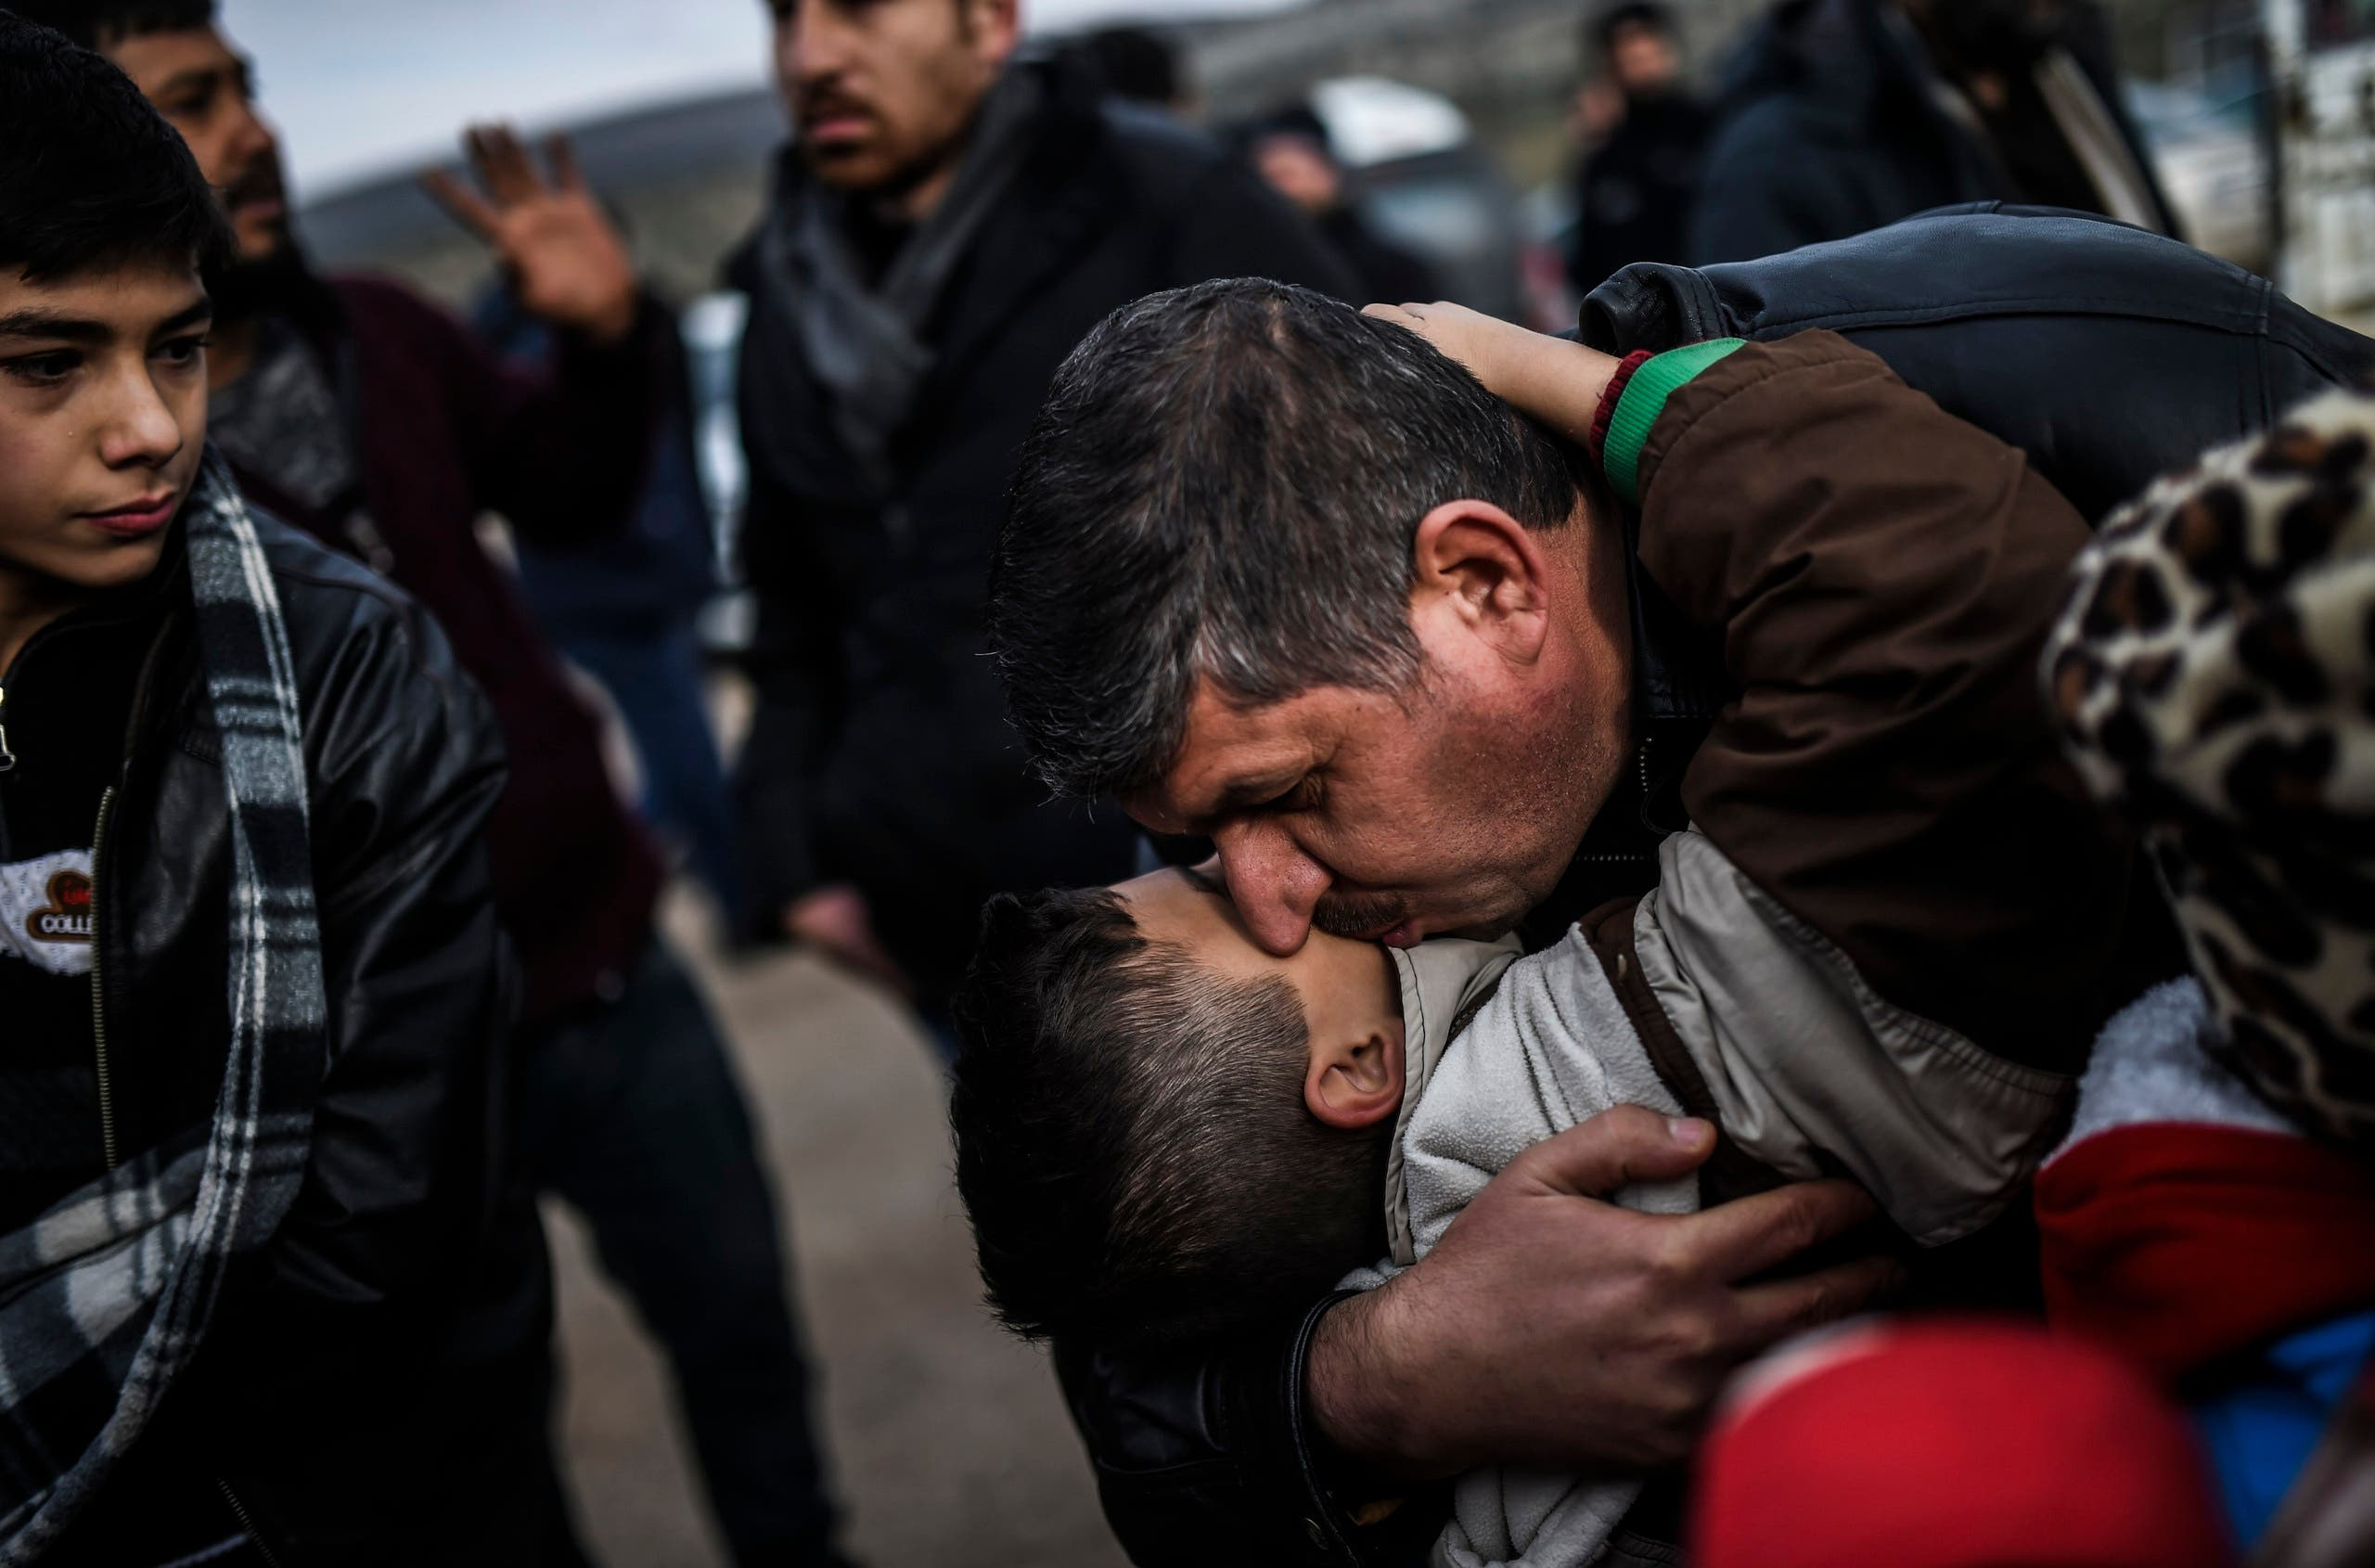 Syrian father Ali embraces one of his children, Zeyn, upon their arrival from the Syrian city of Idlib to the Turkish crossing gate of Cilvegozu in Reyhanli in Hatay near the Syrian border on December 17, 2016. (AFP)